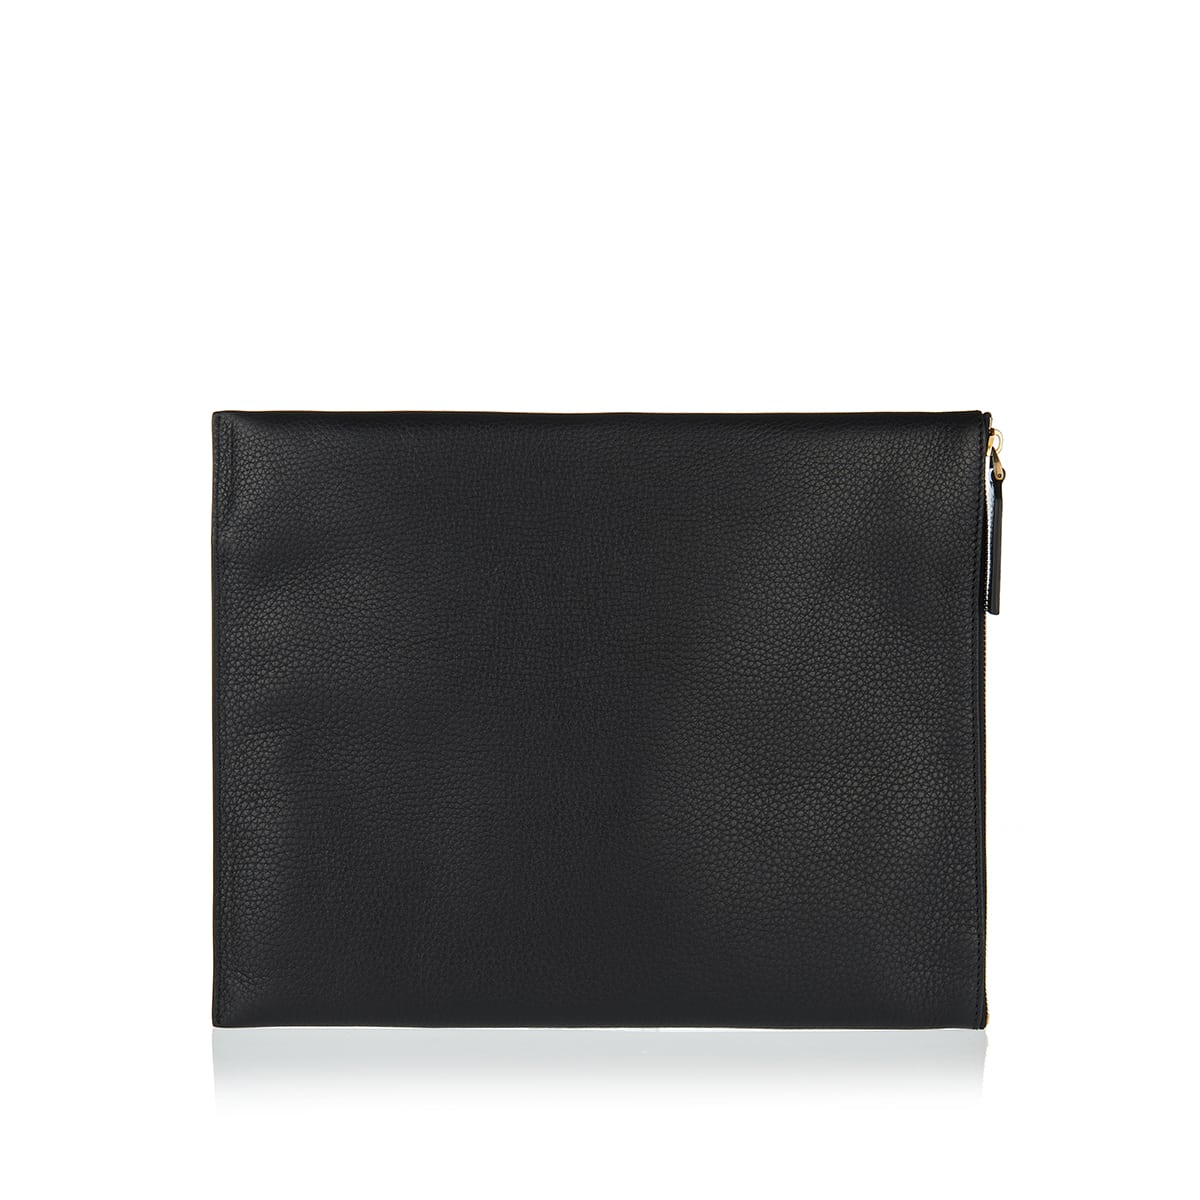 Identity leather pouch